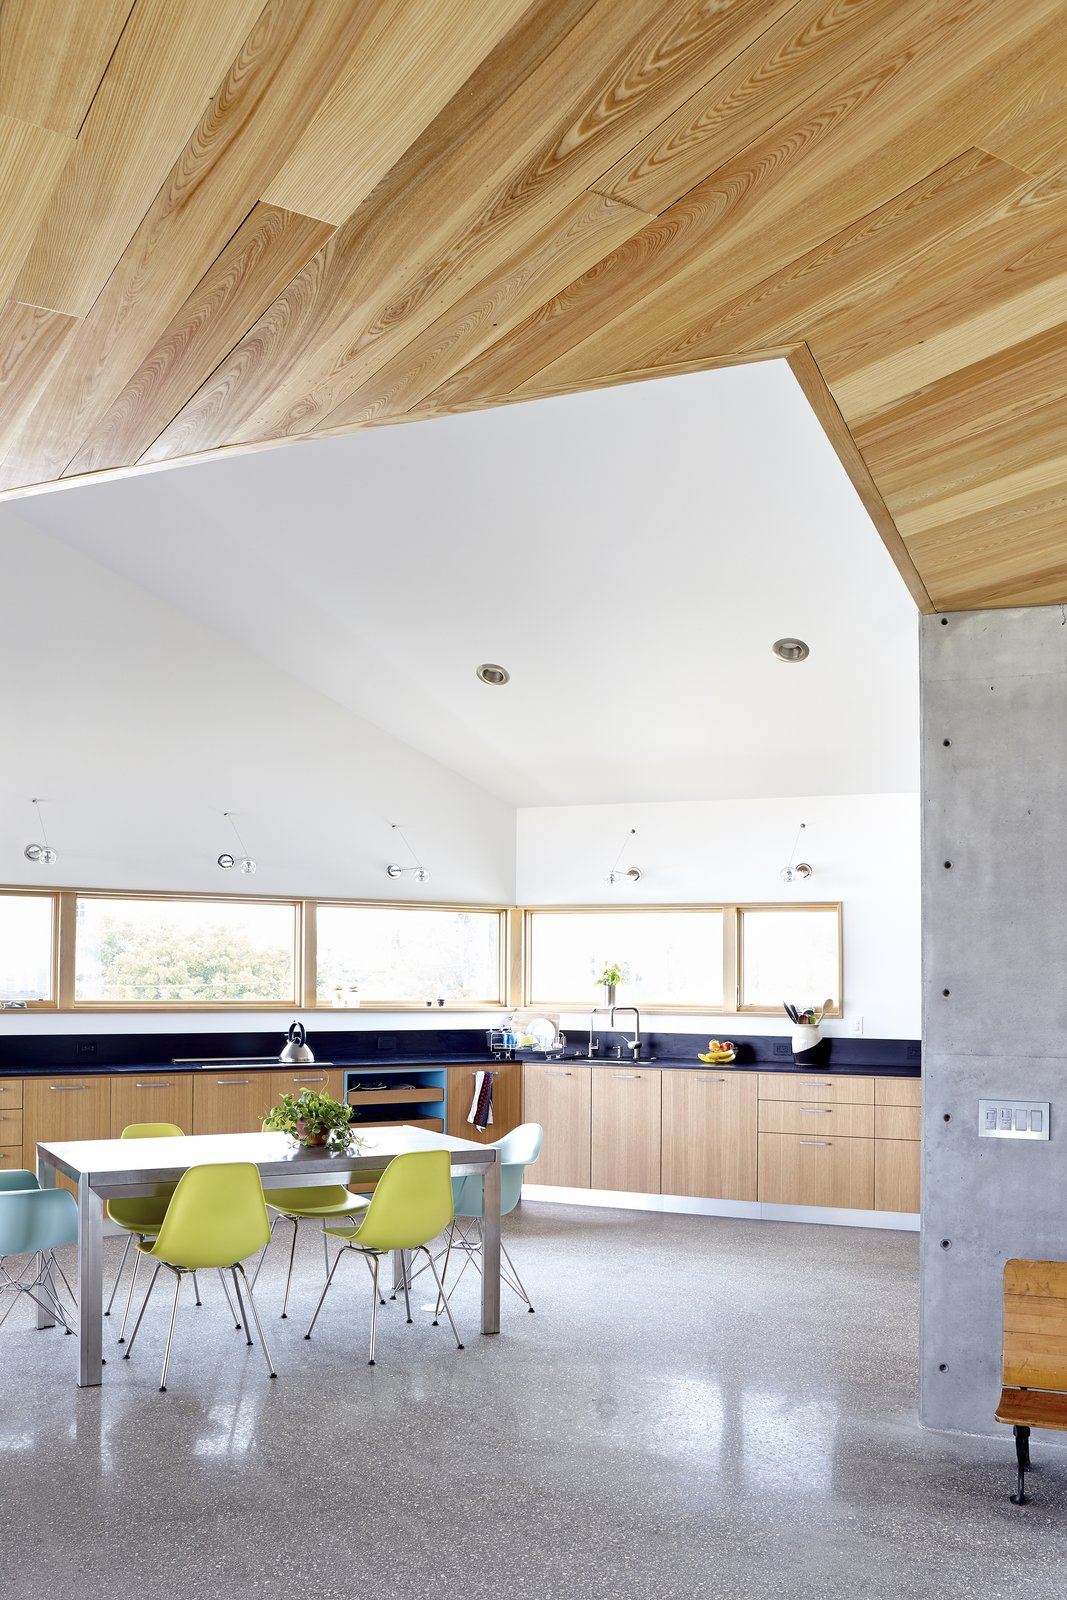 Kitchen, Wood Cabinet, and Concrete Floor  Seagrape House by Traction Architecture